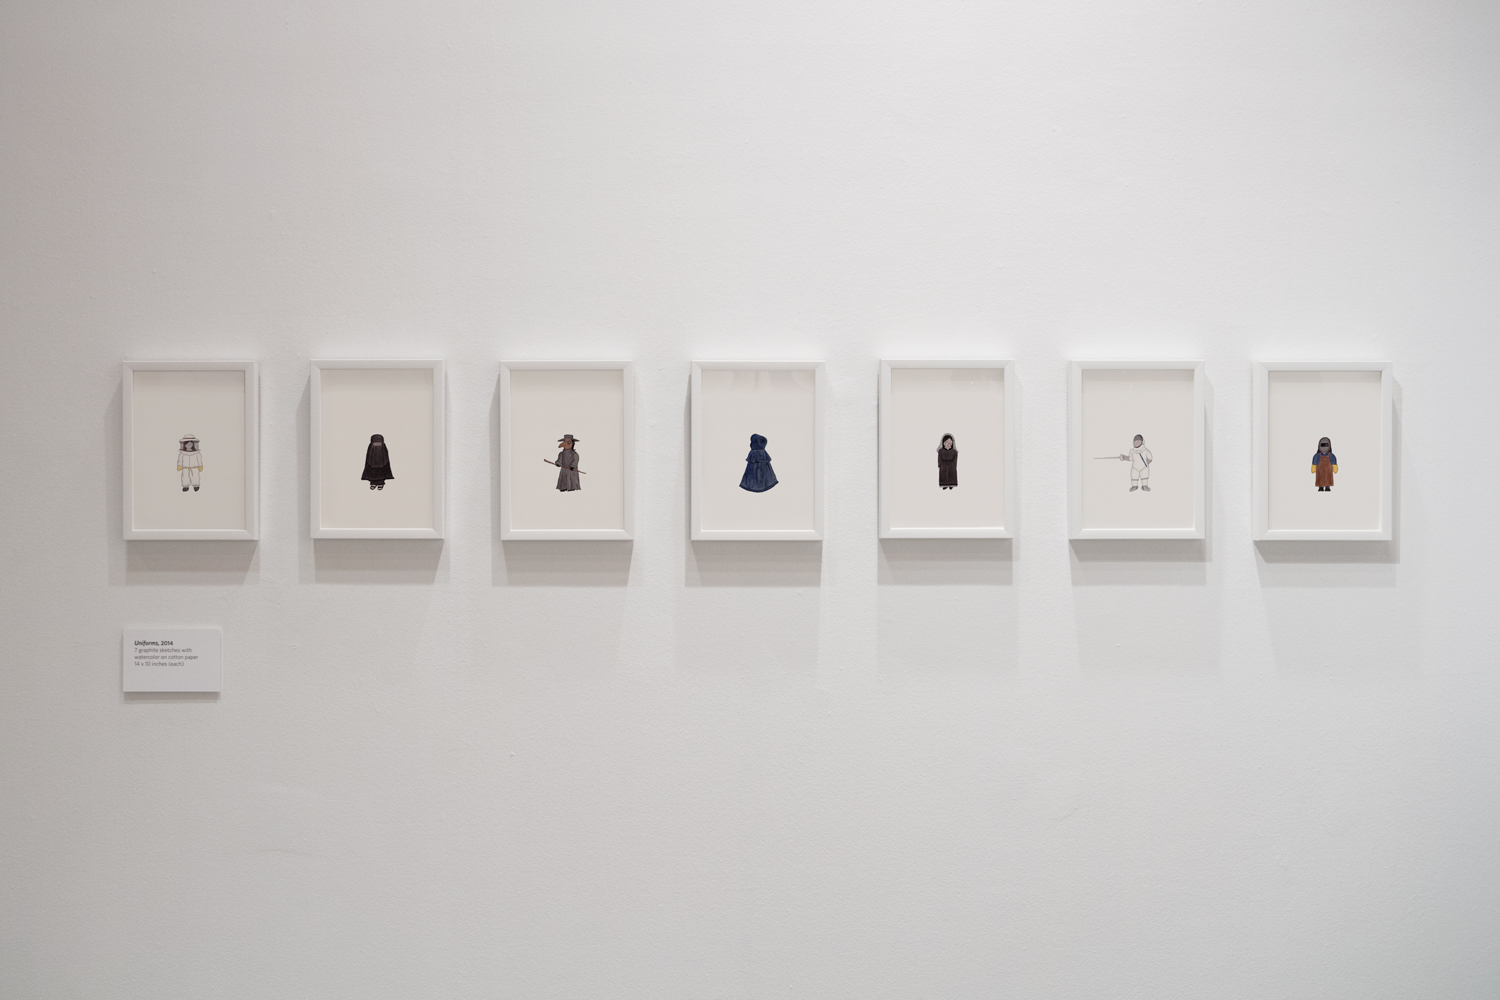 """Installation view of the """"Uniforms"""" drawings at the Laurie M. Tisch Gallery in New York, 2016"""